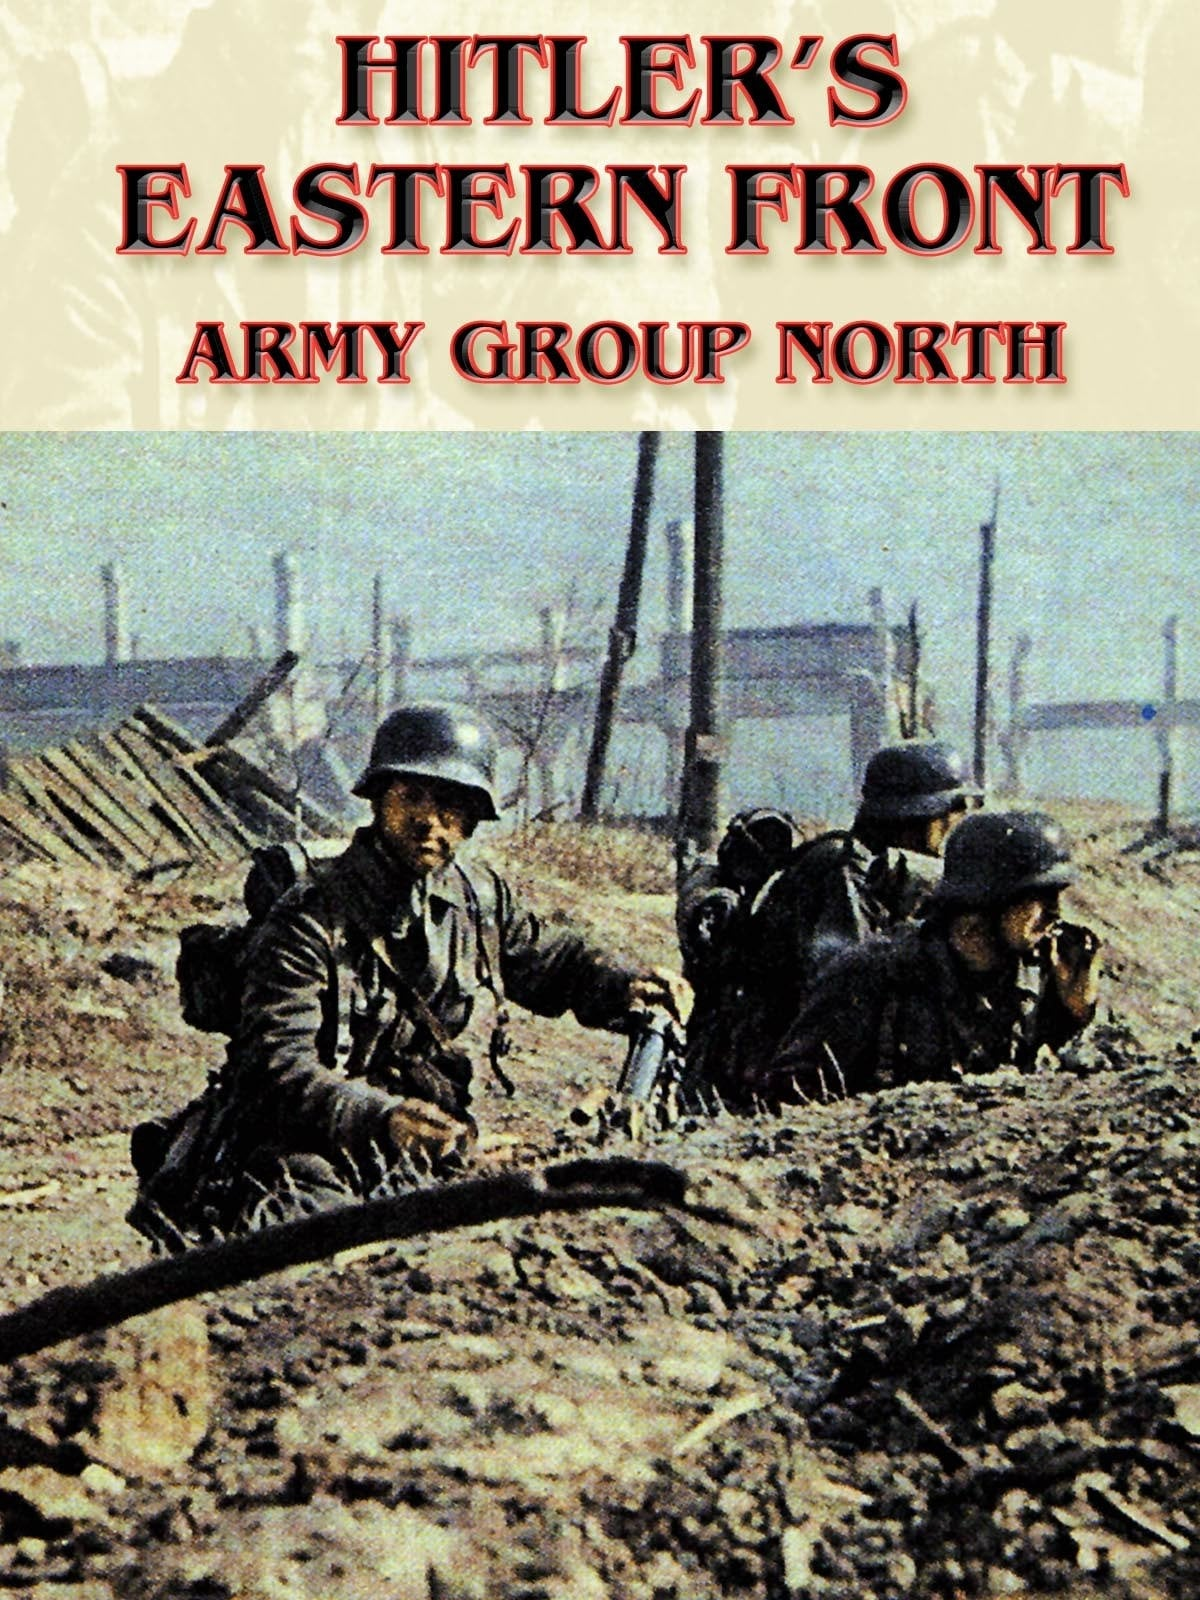 Hitler's Eastern Front: Army Group North on FREECABLE TV